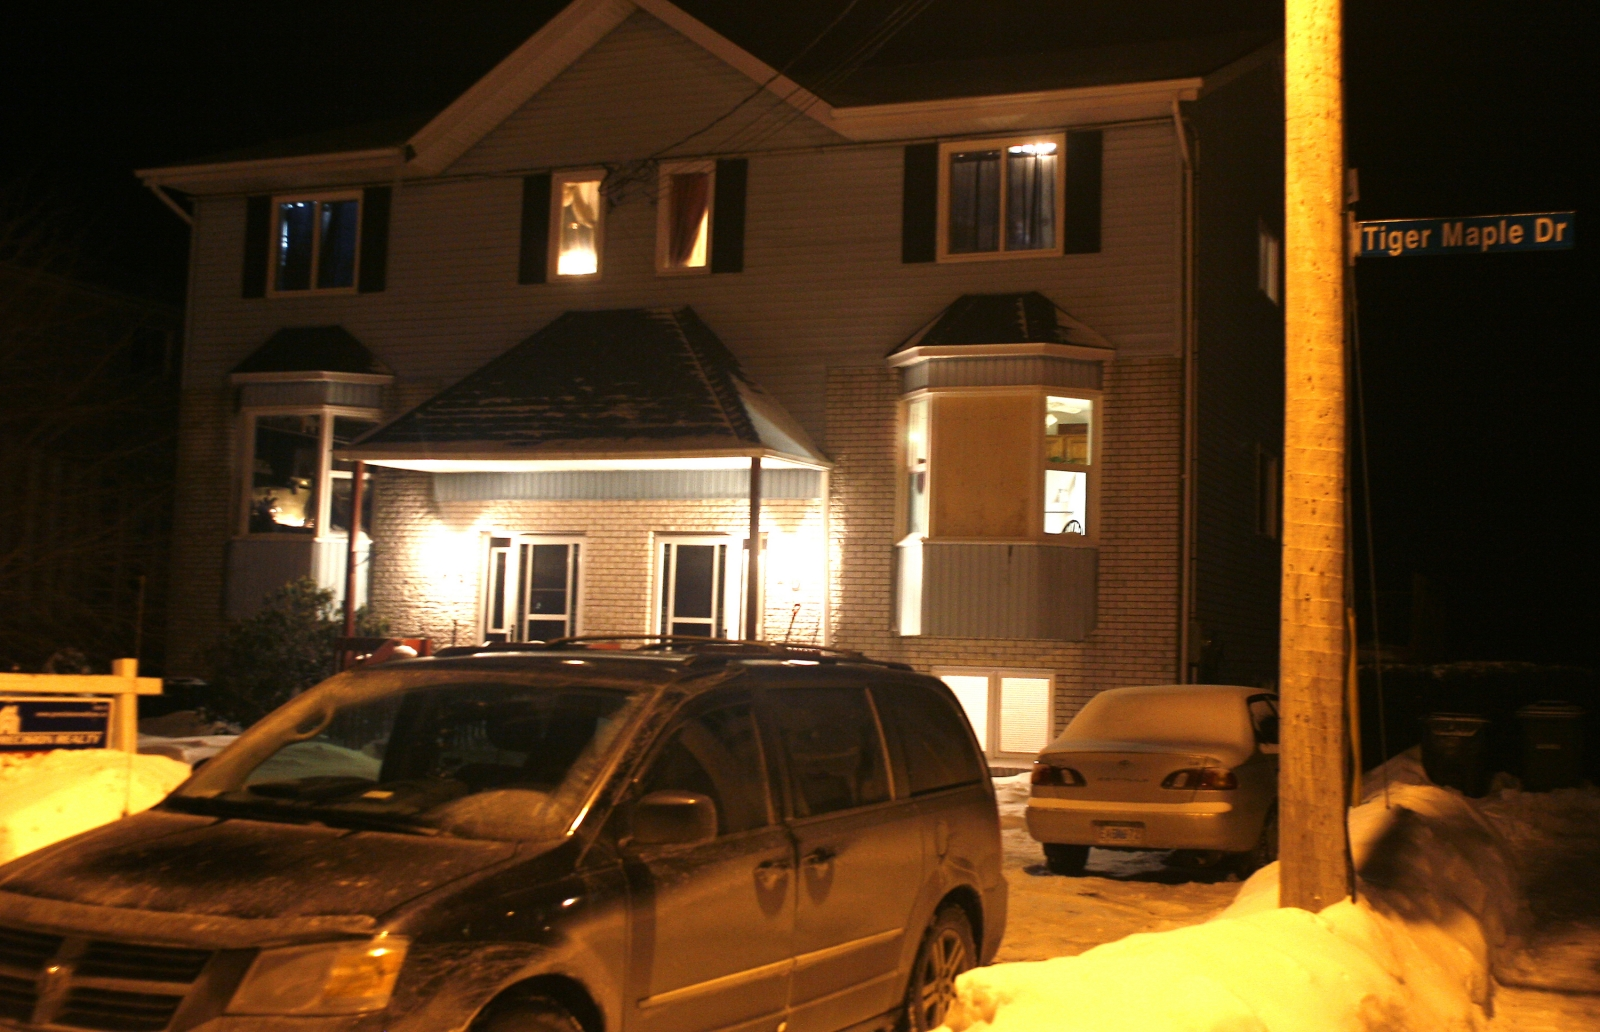 The home in Timberlea, Nova Scotia, where the 19-year-old man was found dead. (Reuters)